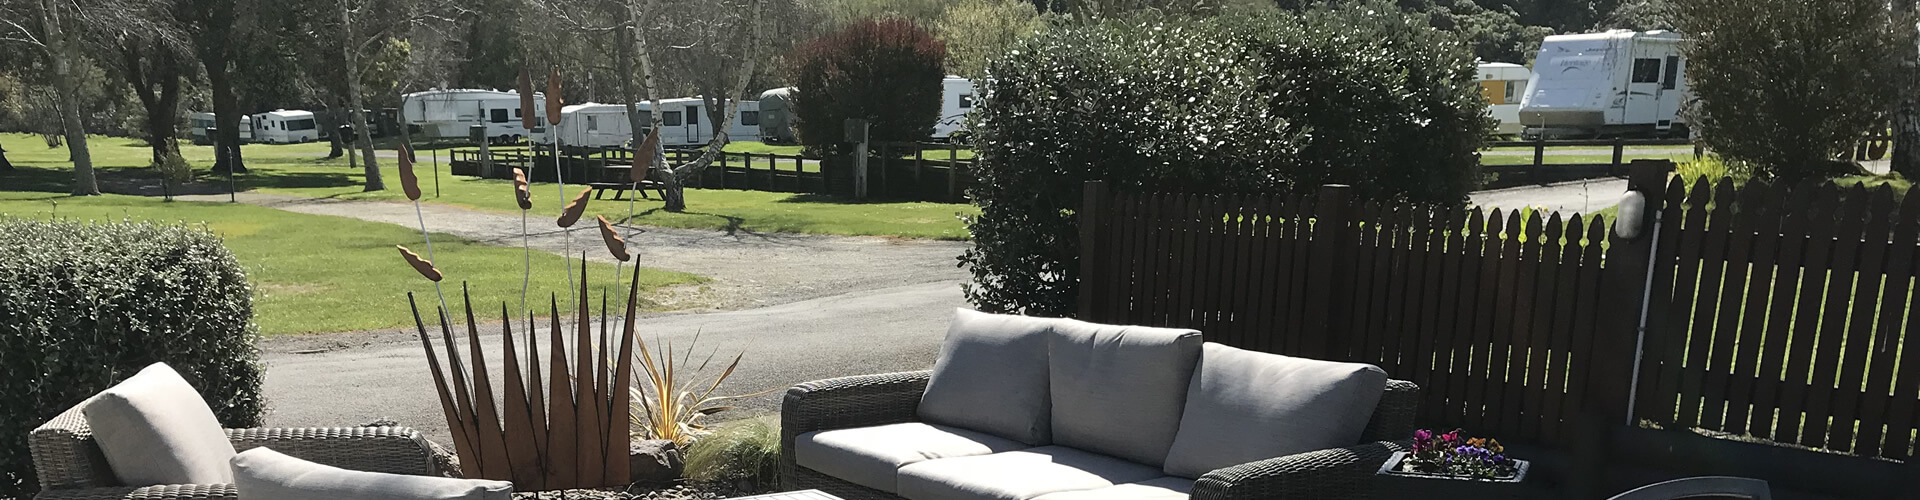 Outdoor Sitting Area At Parklands Marina Holiday Park In Picton